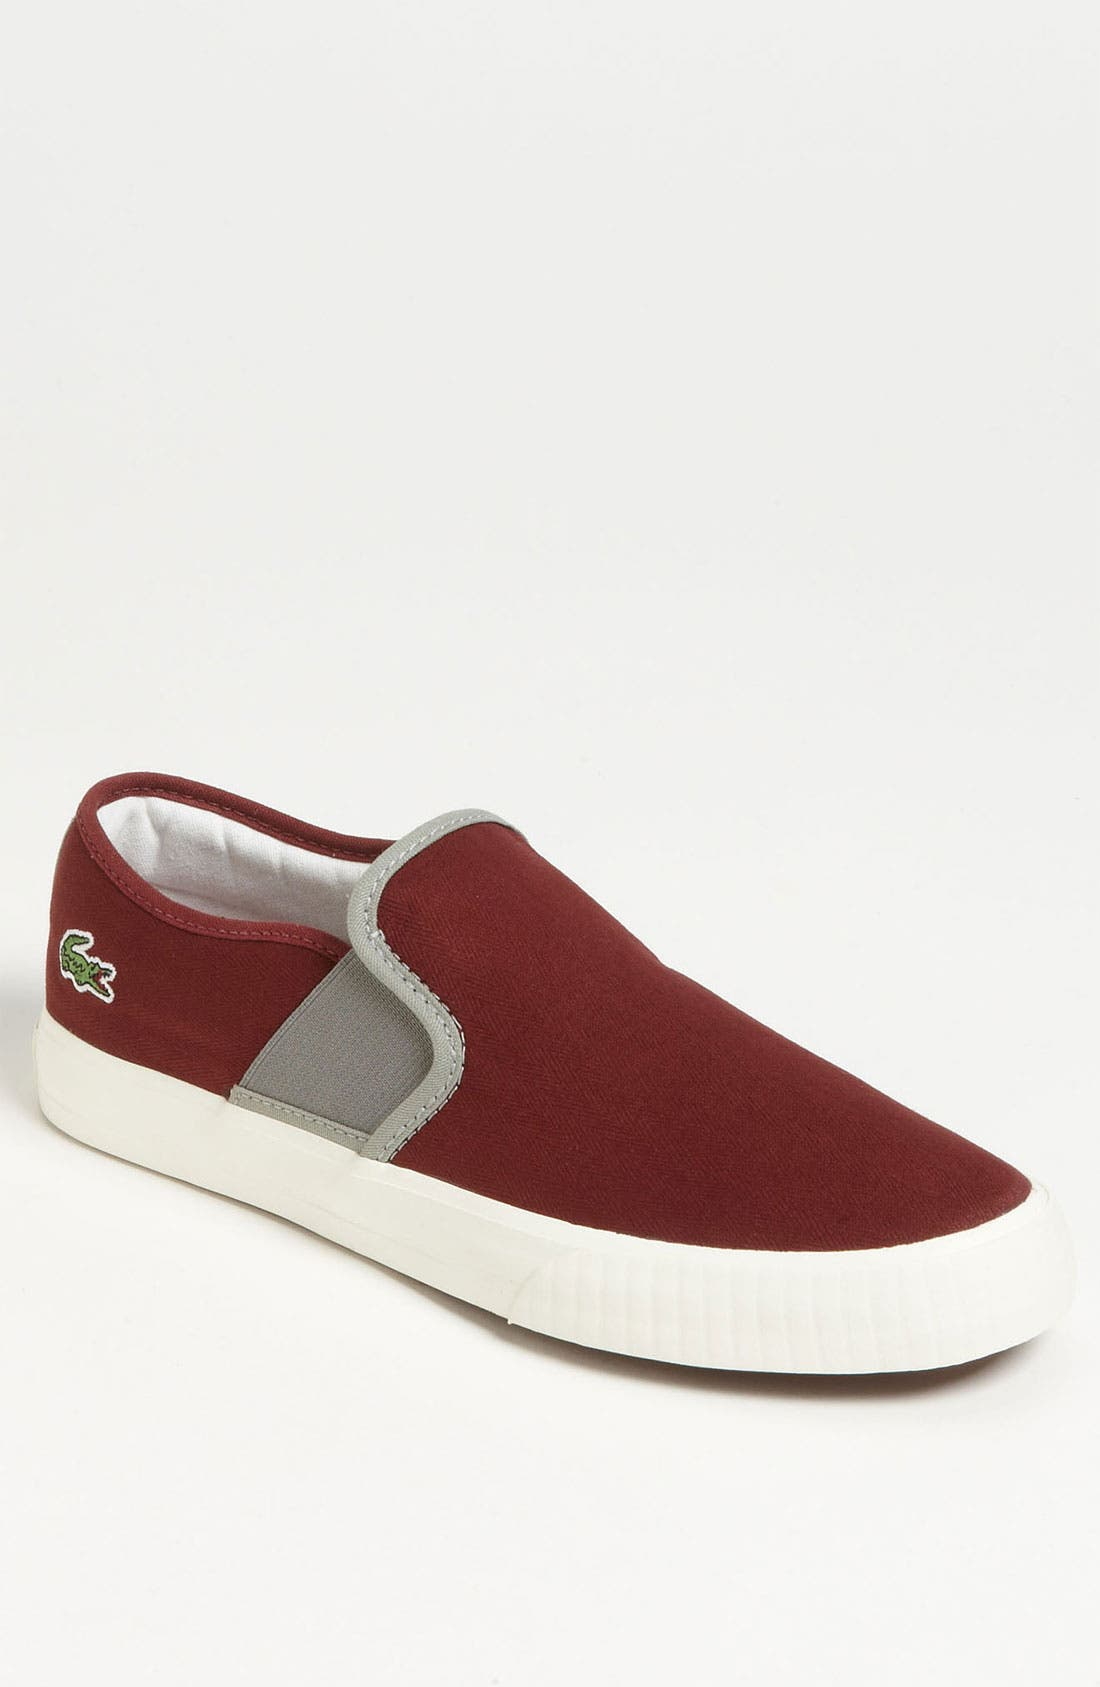 Alternate Image 1 Selected - Lacoste 'Lombardcre' Slip-On